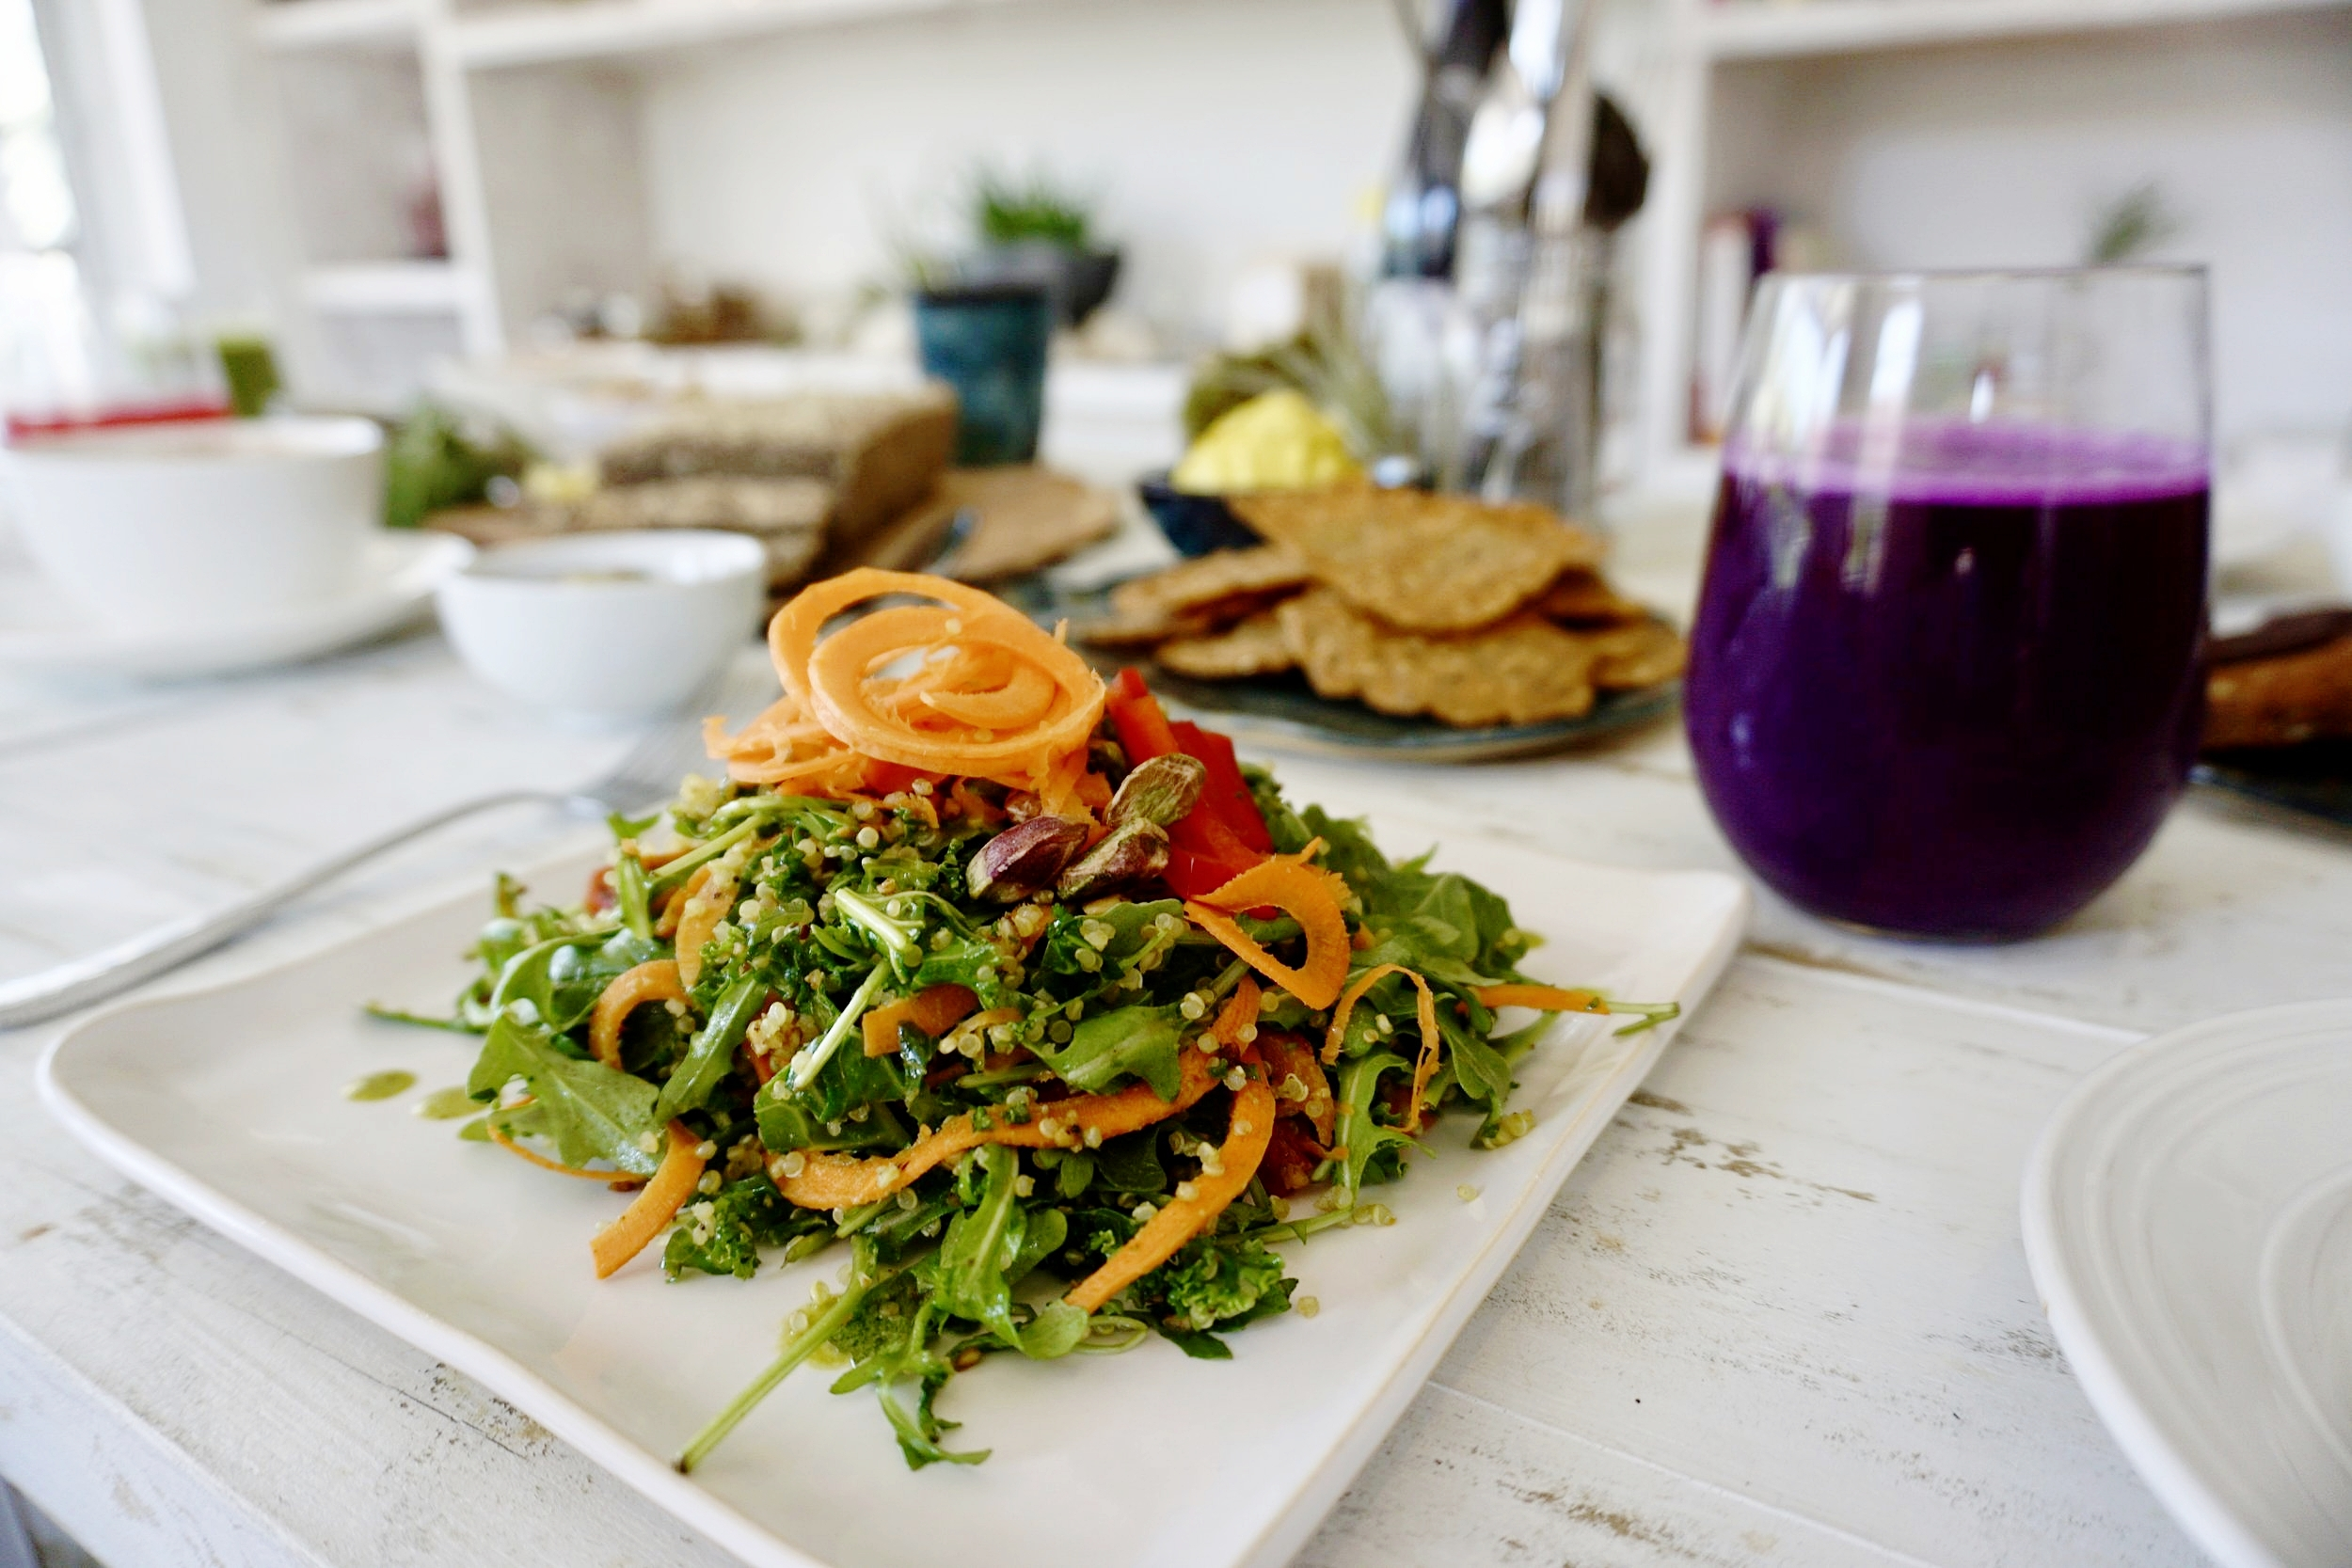 Vegetable salad with herb dressing